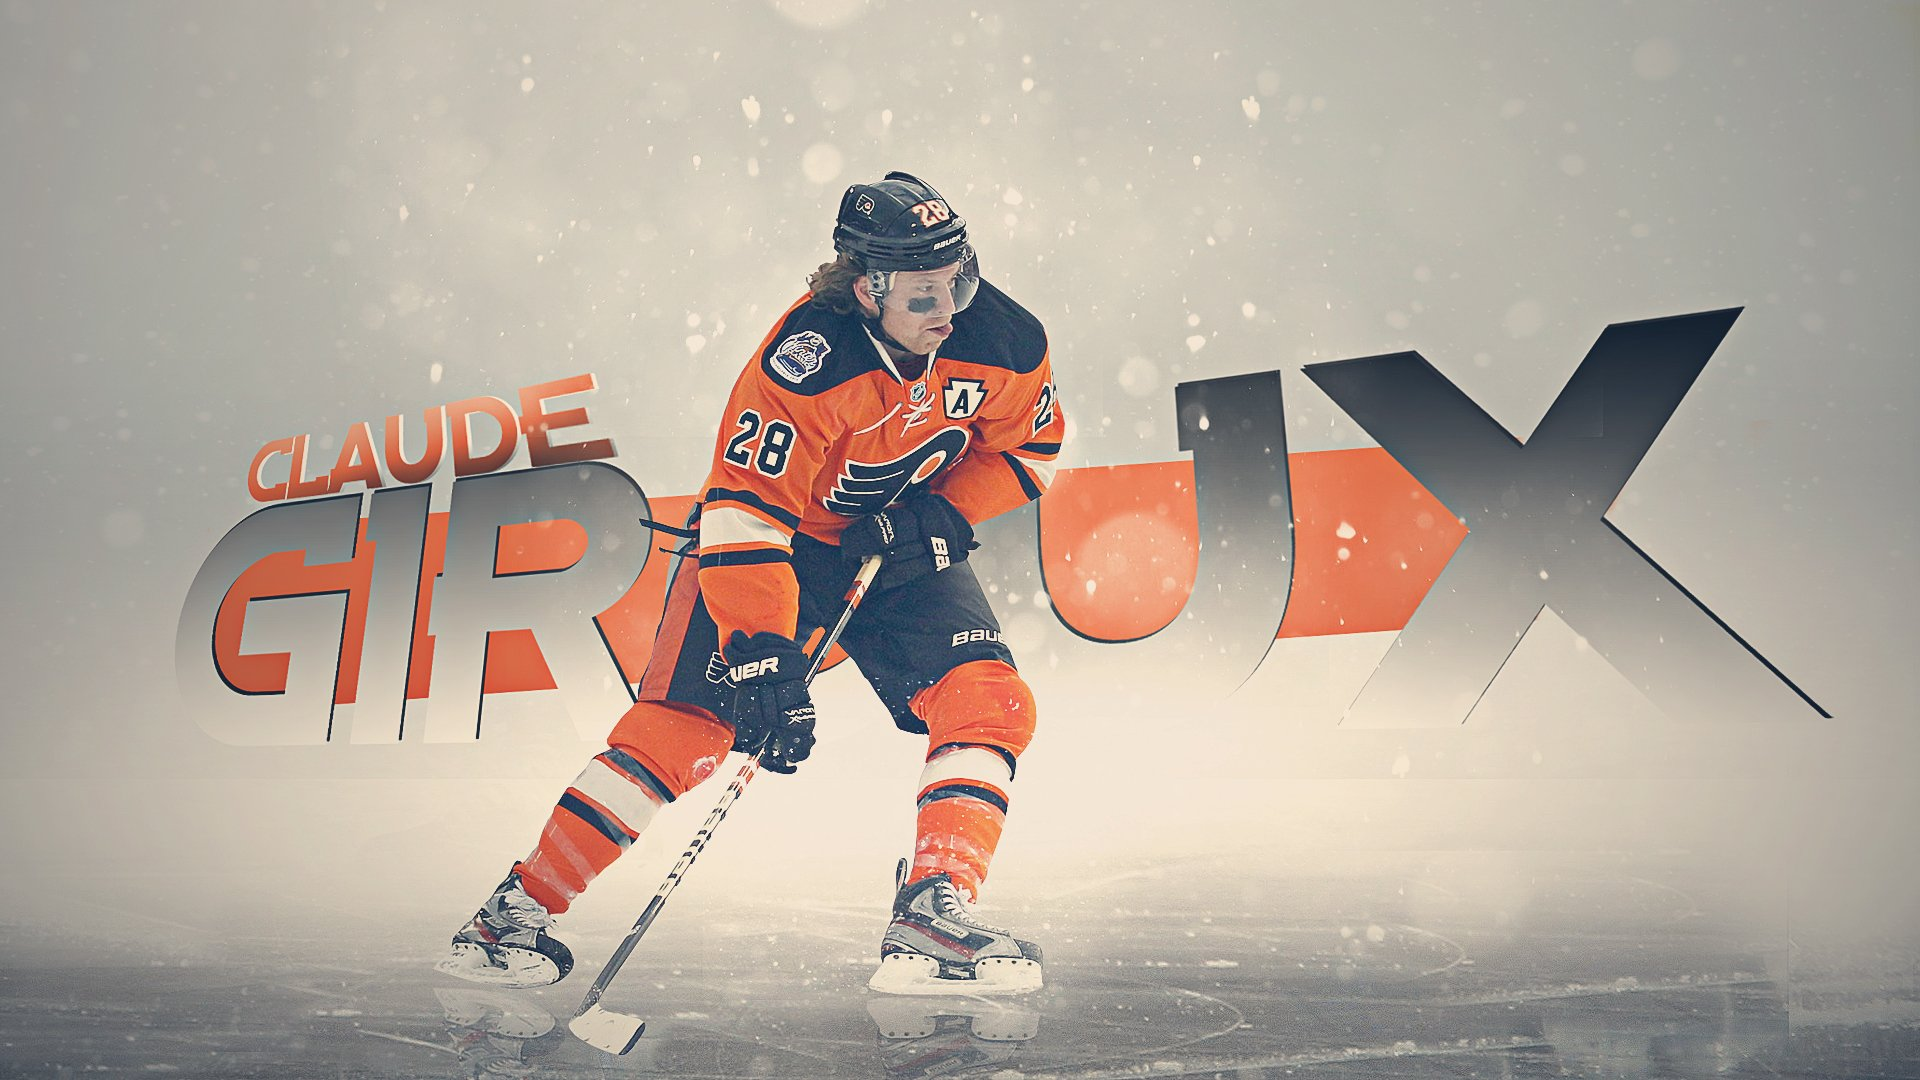 PHILADELPHIA FLYERS nhl hockey 37 wallpaper 1920x1080 344876 1920x1080